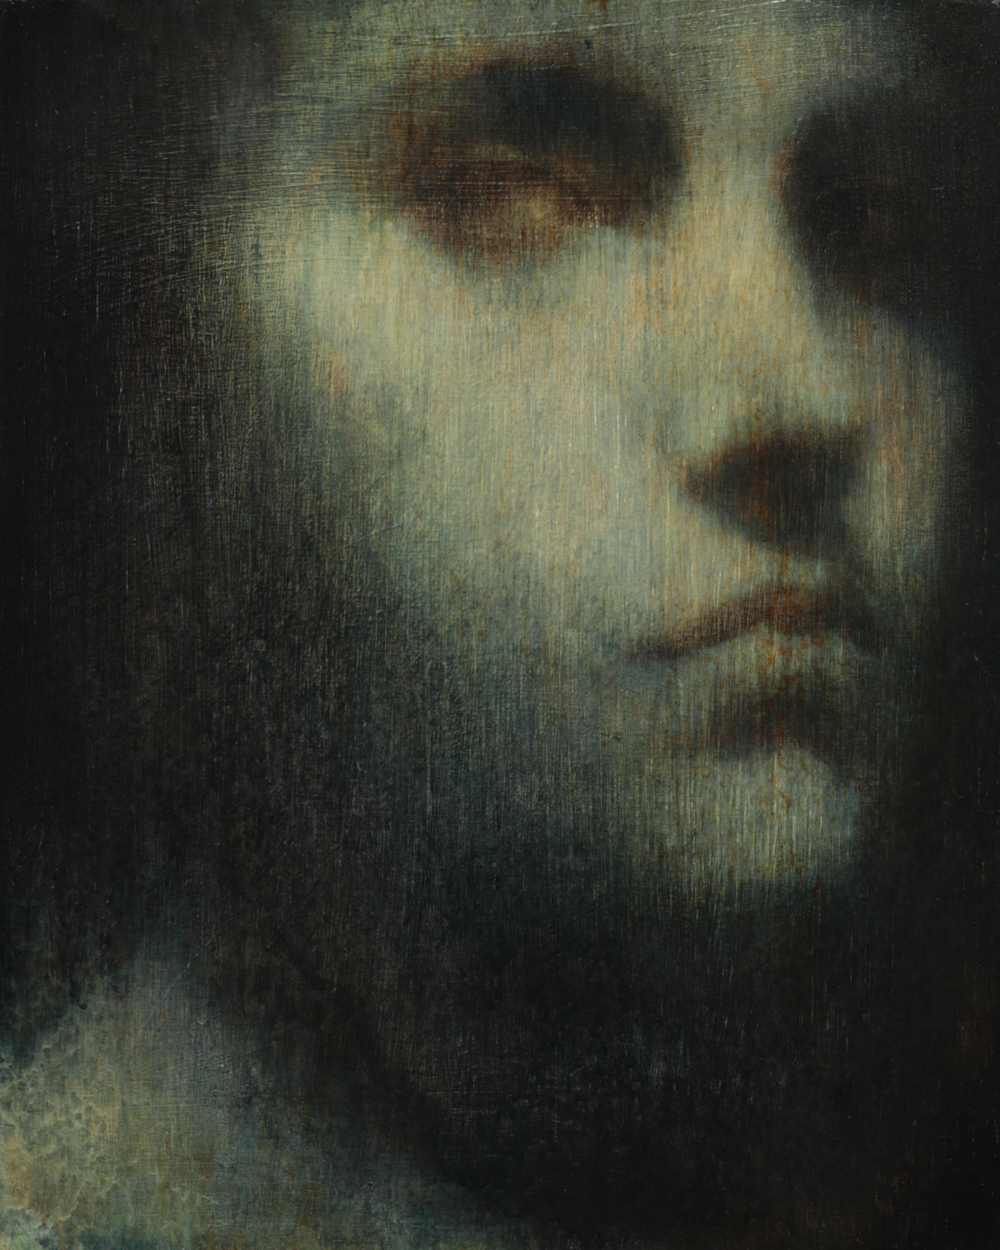 Maya Kulenovic; INTERLUDE No4, 2019. Oil on wood panel. 'Faces' series.